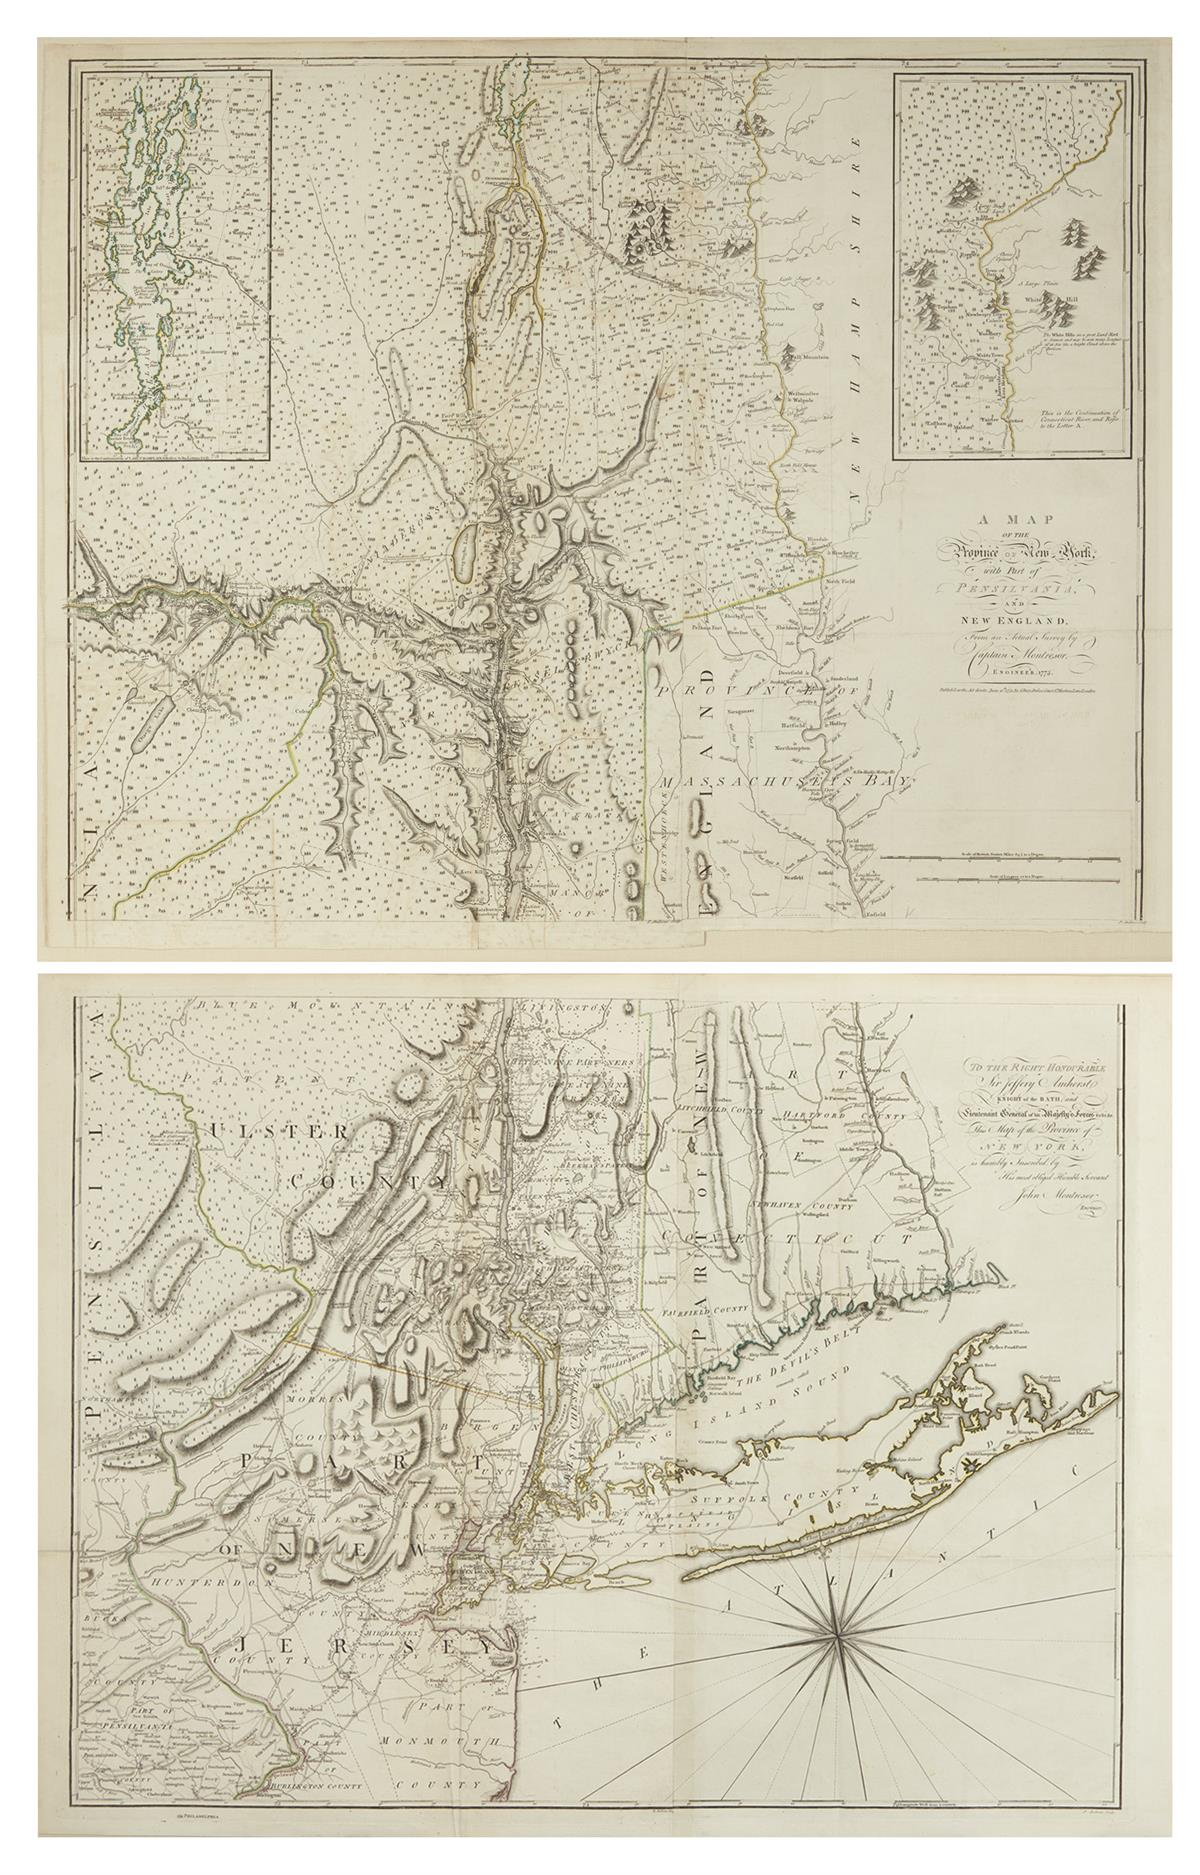 MONTRESOR, JOHN. A Map of the Province of New York, with Part of Pensilvania, and New England.